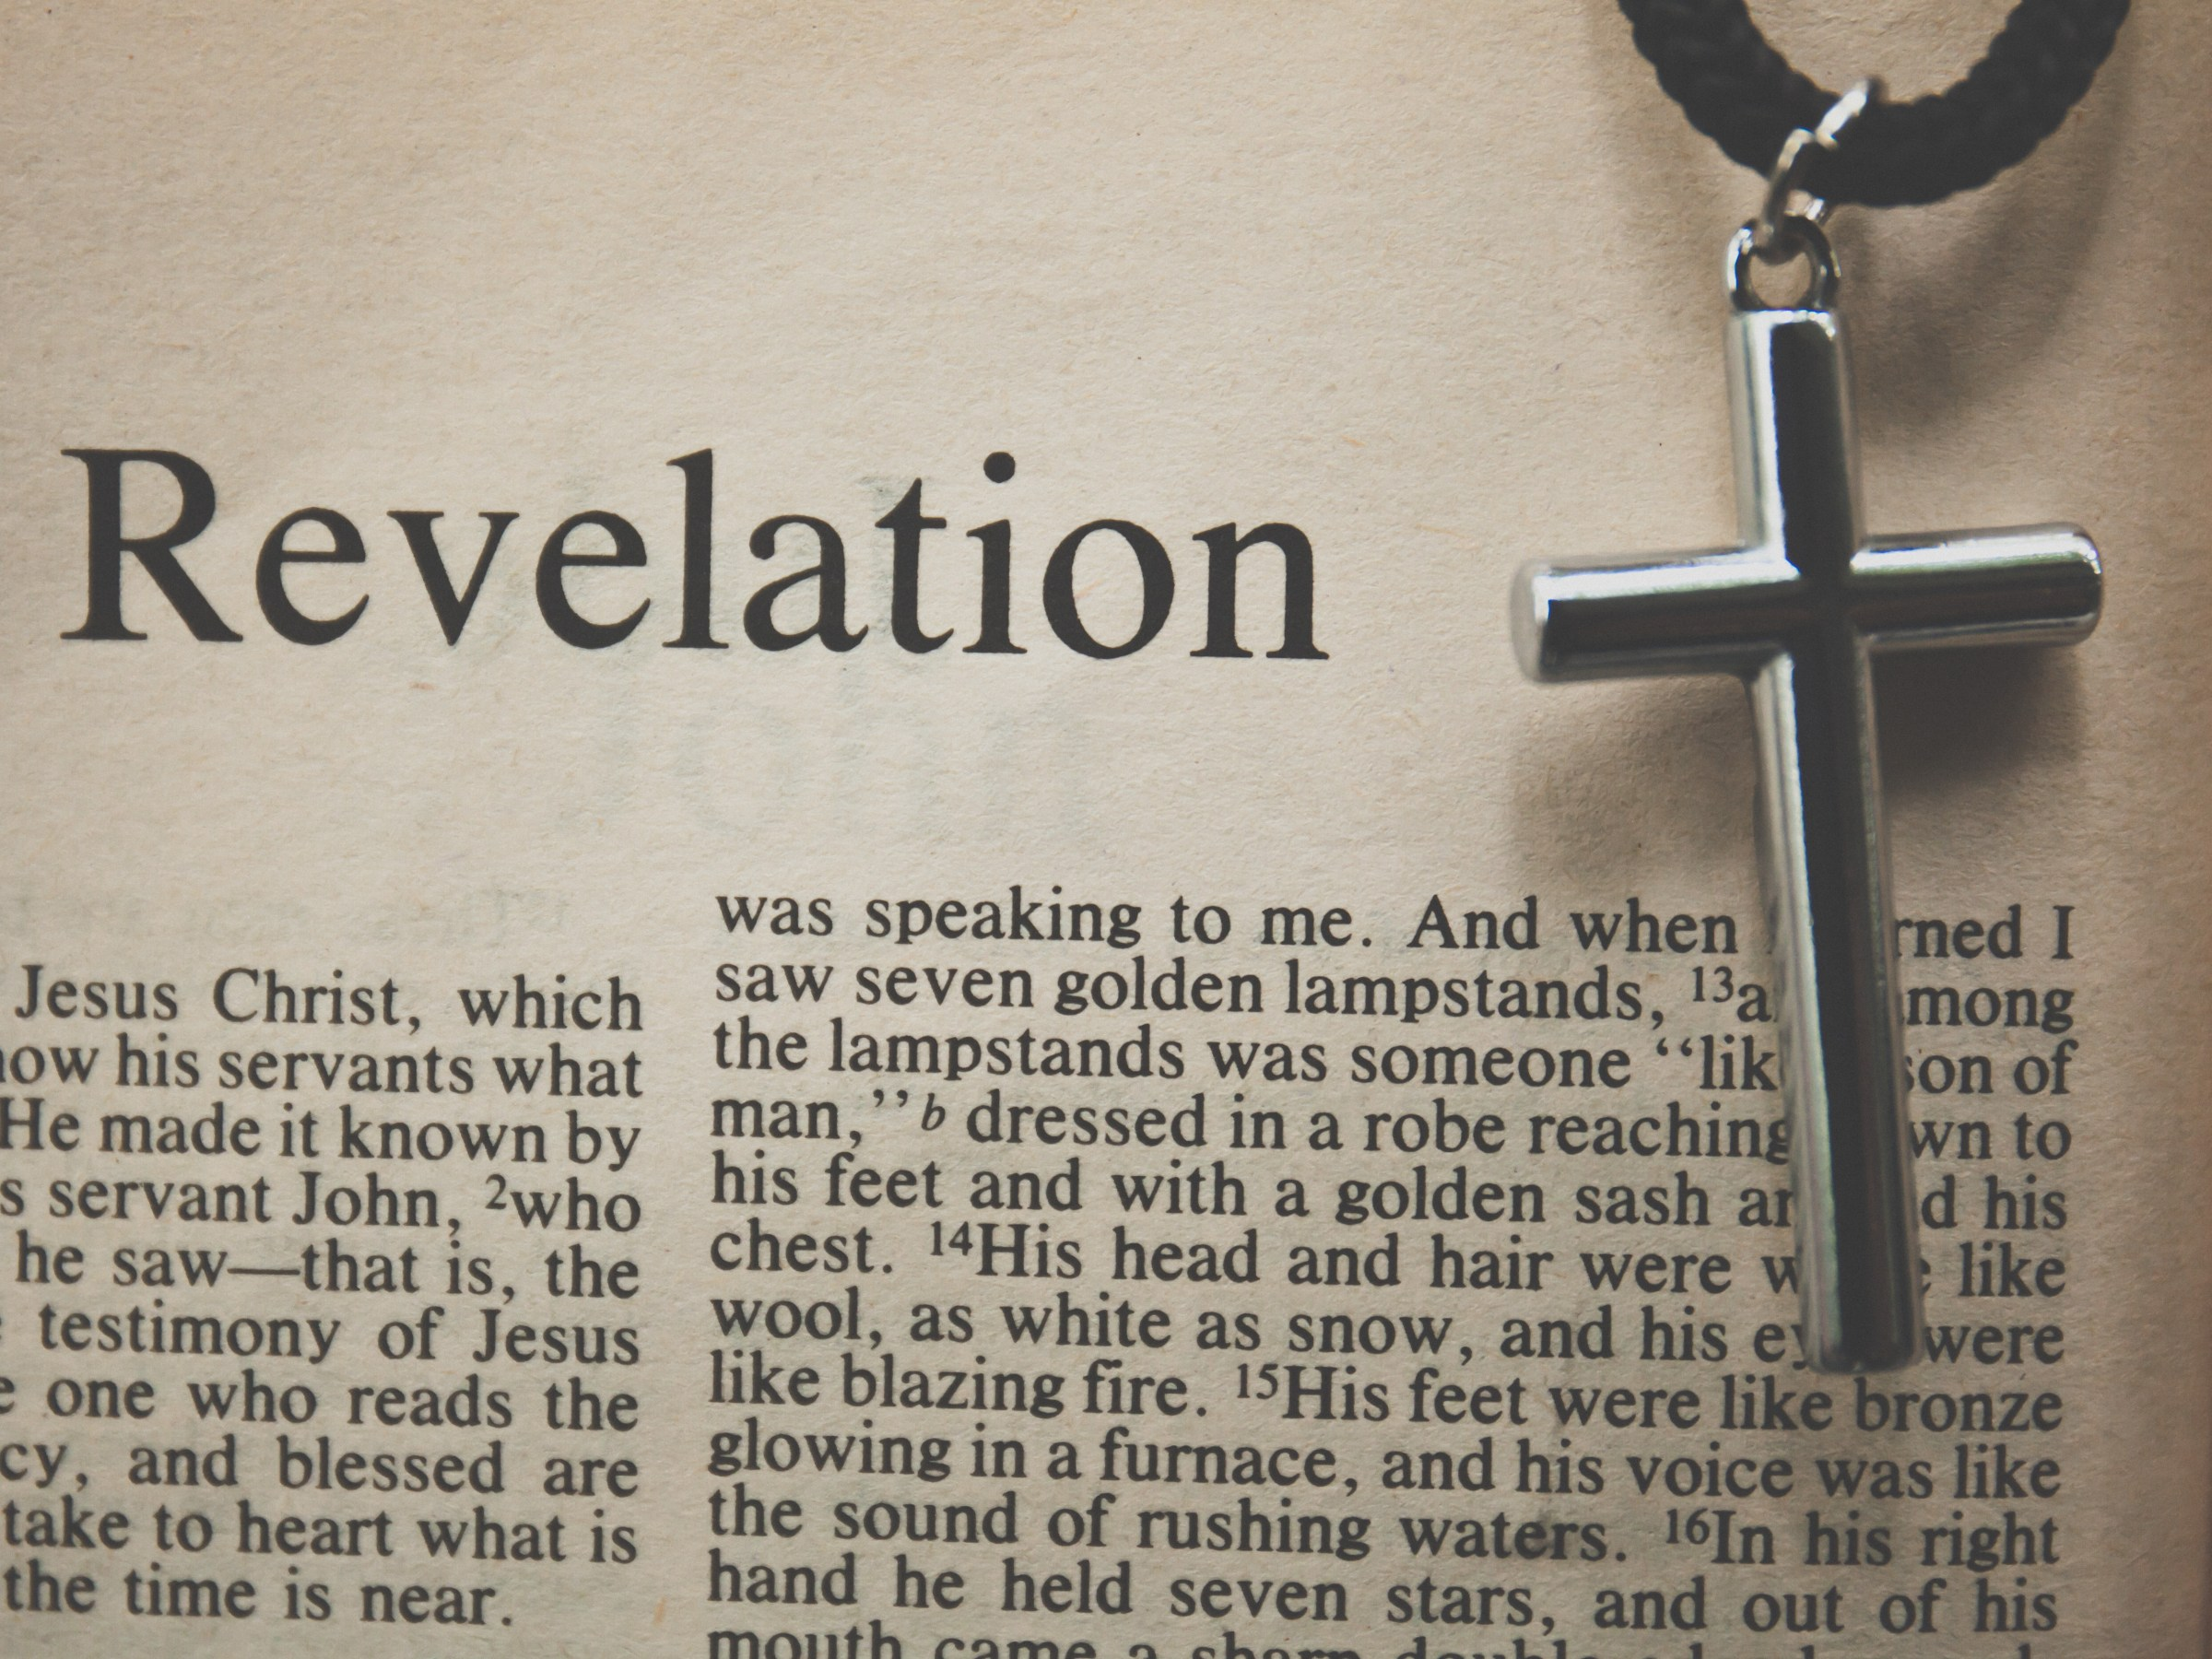 The Book of Revelation | What Does it Mean to Serve God